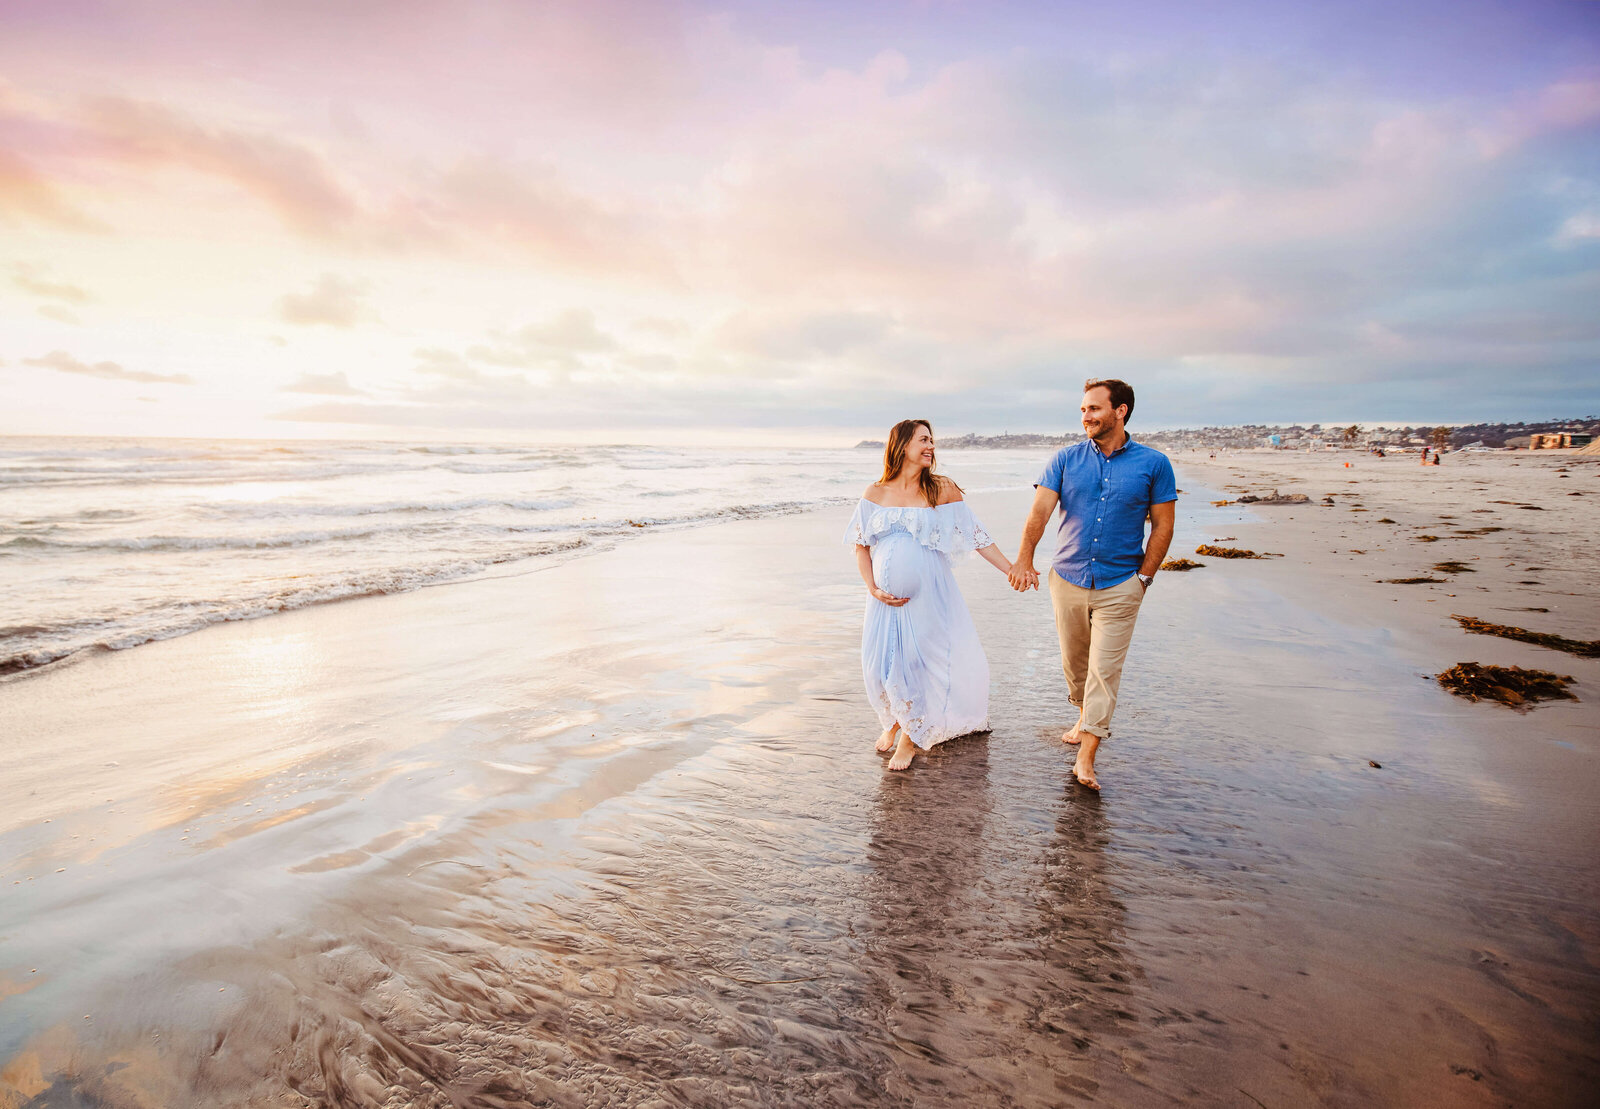 San-diego-maternity-photographer-15